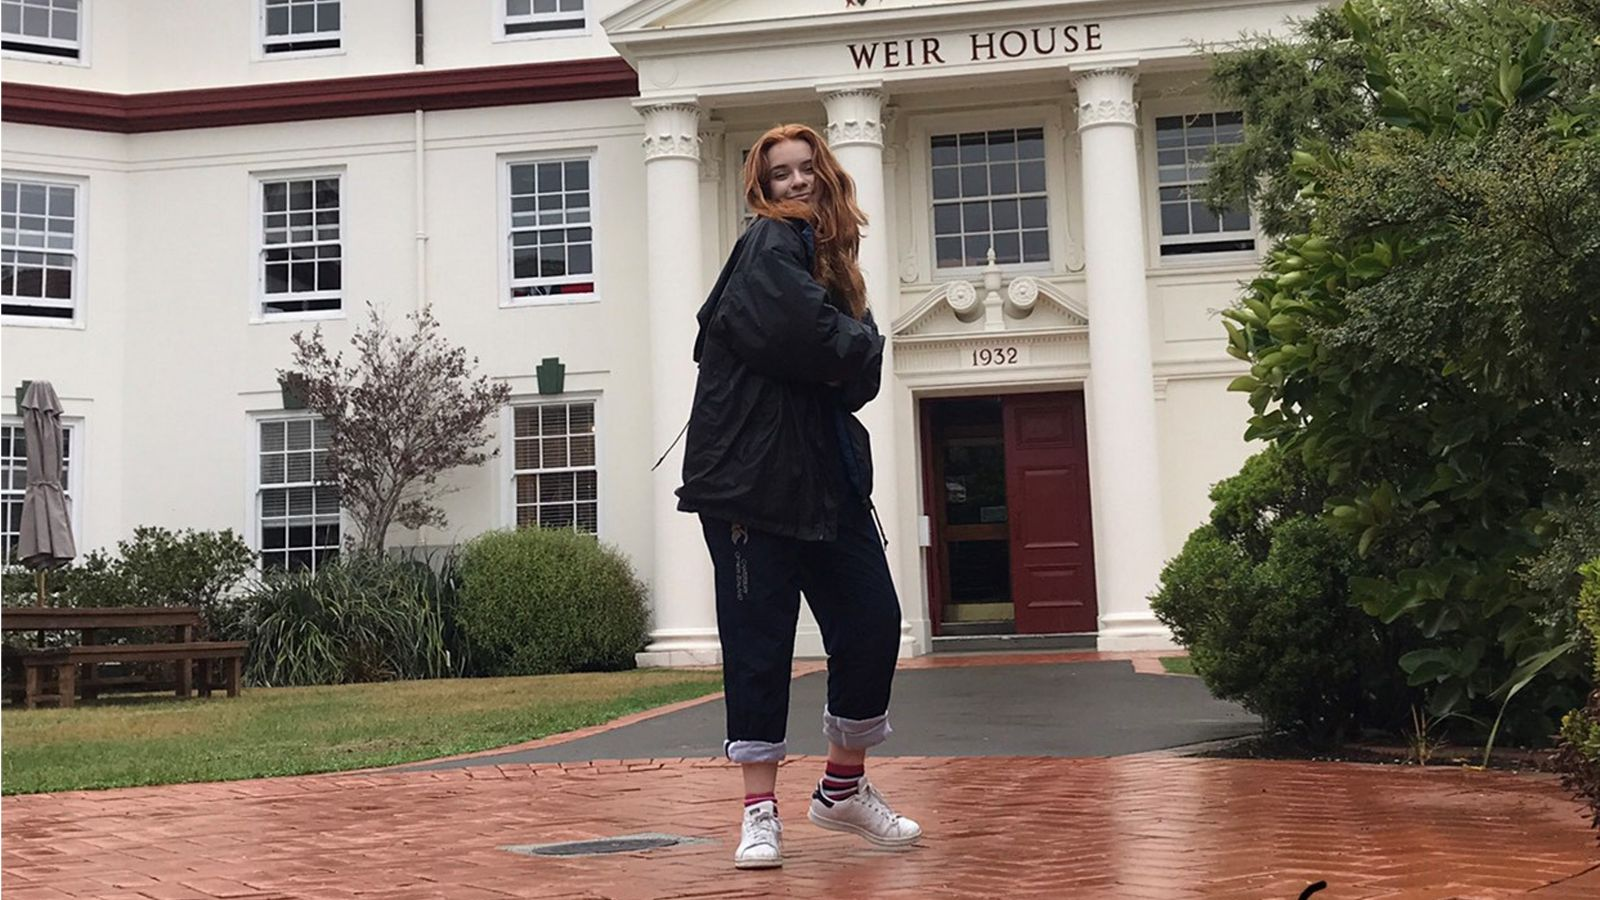 Ella stands outside of Weir House, an old white estate.